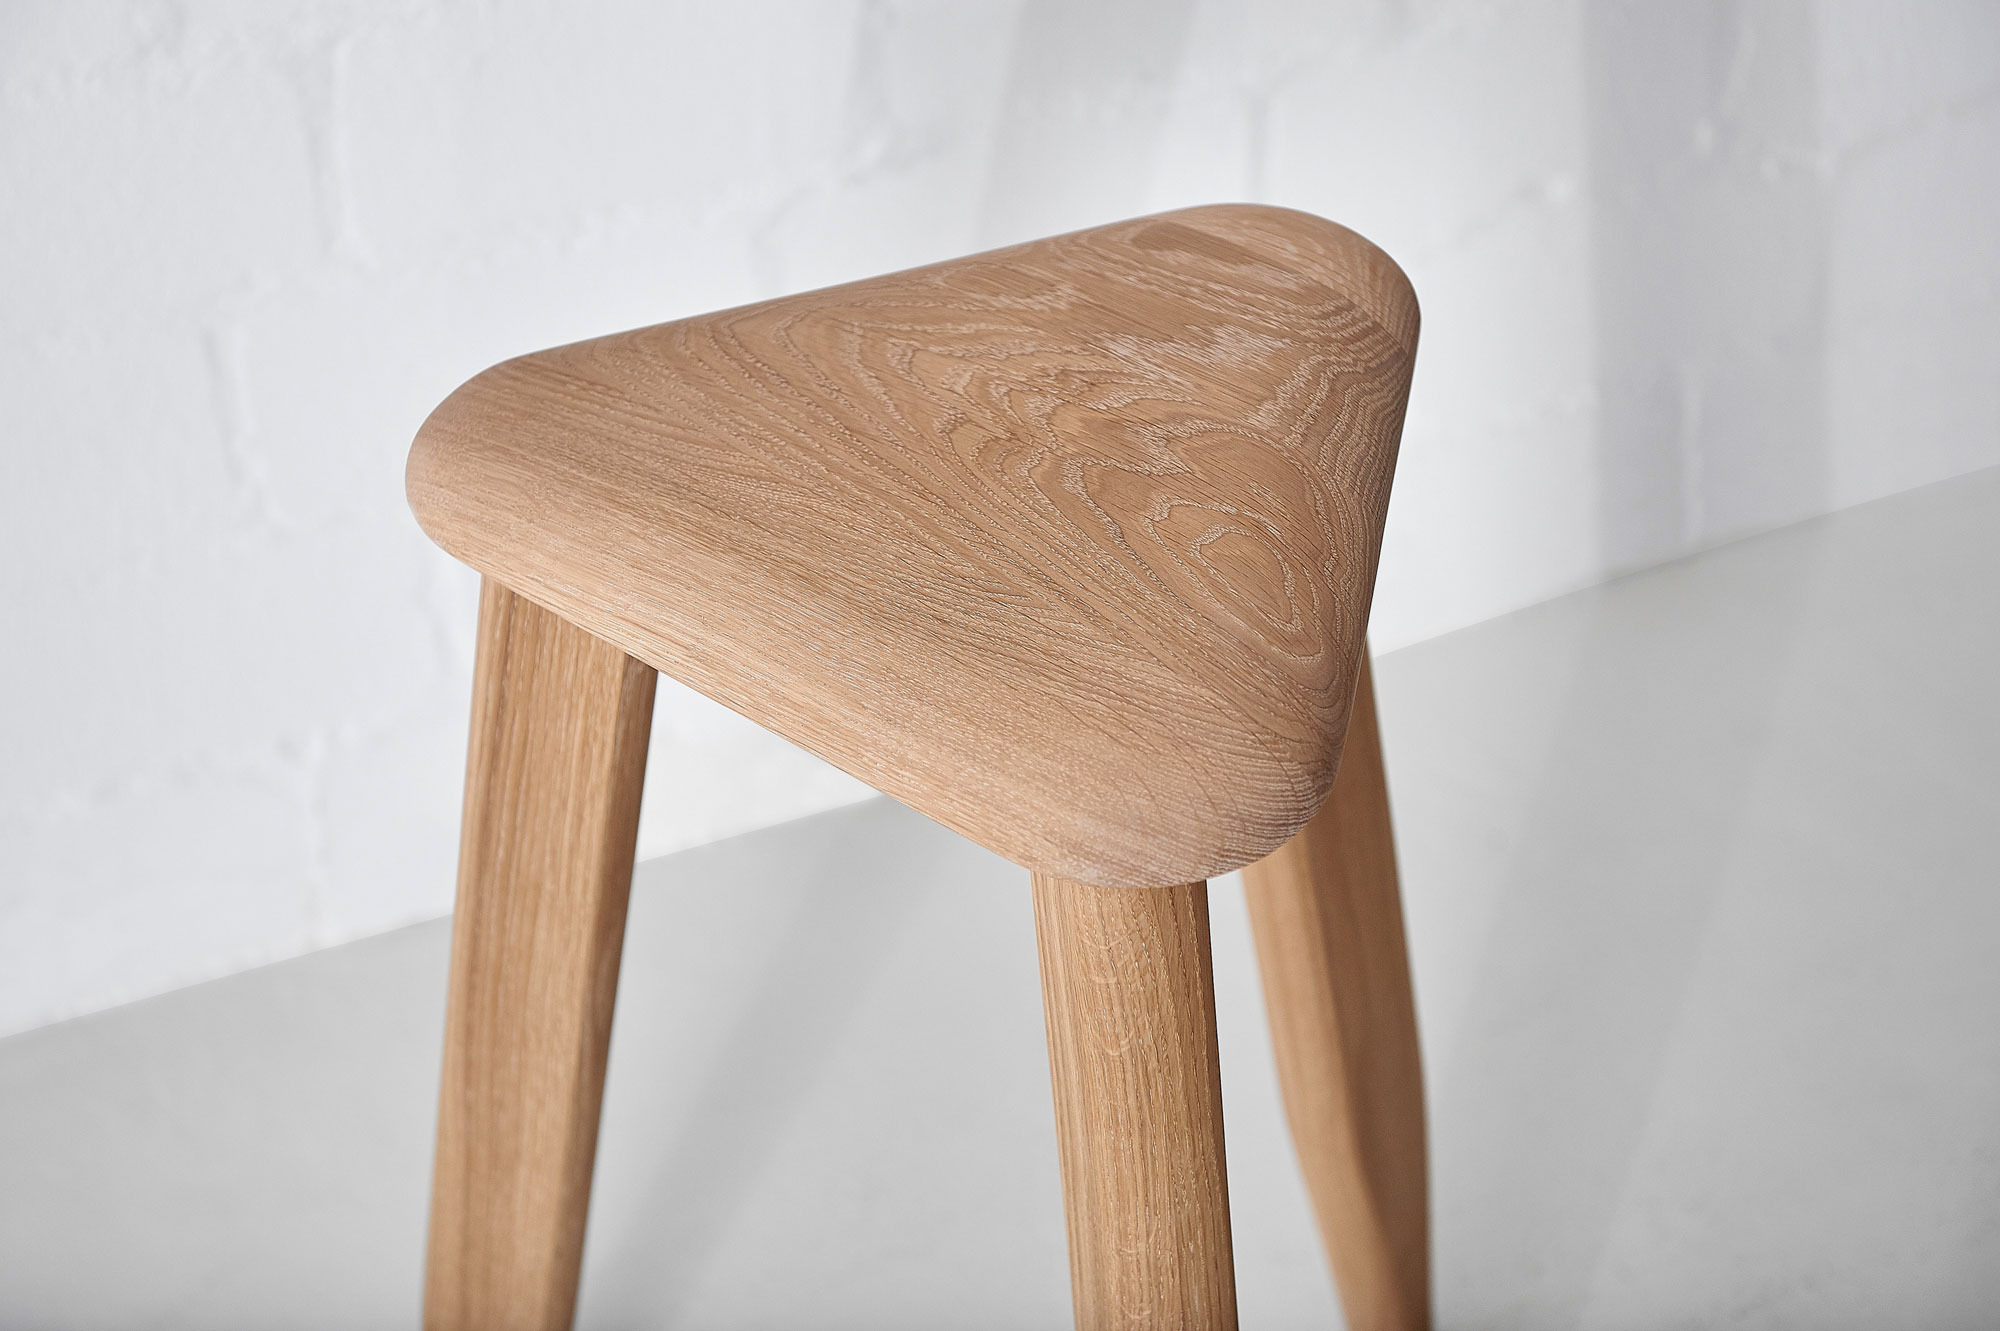 Triangle Wood Stool AETAS SPACE Edited custom made in solid wood by vitamin design